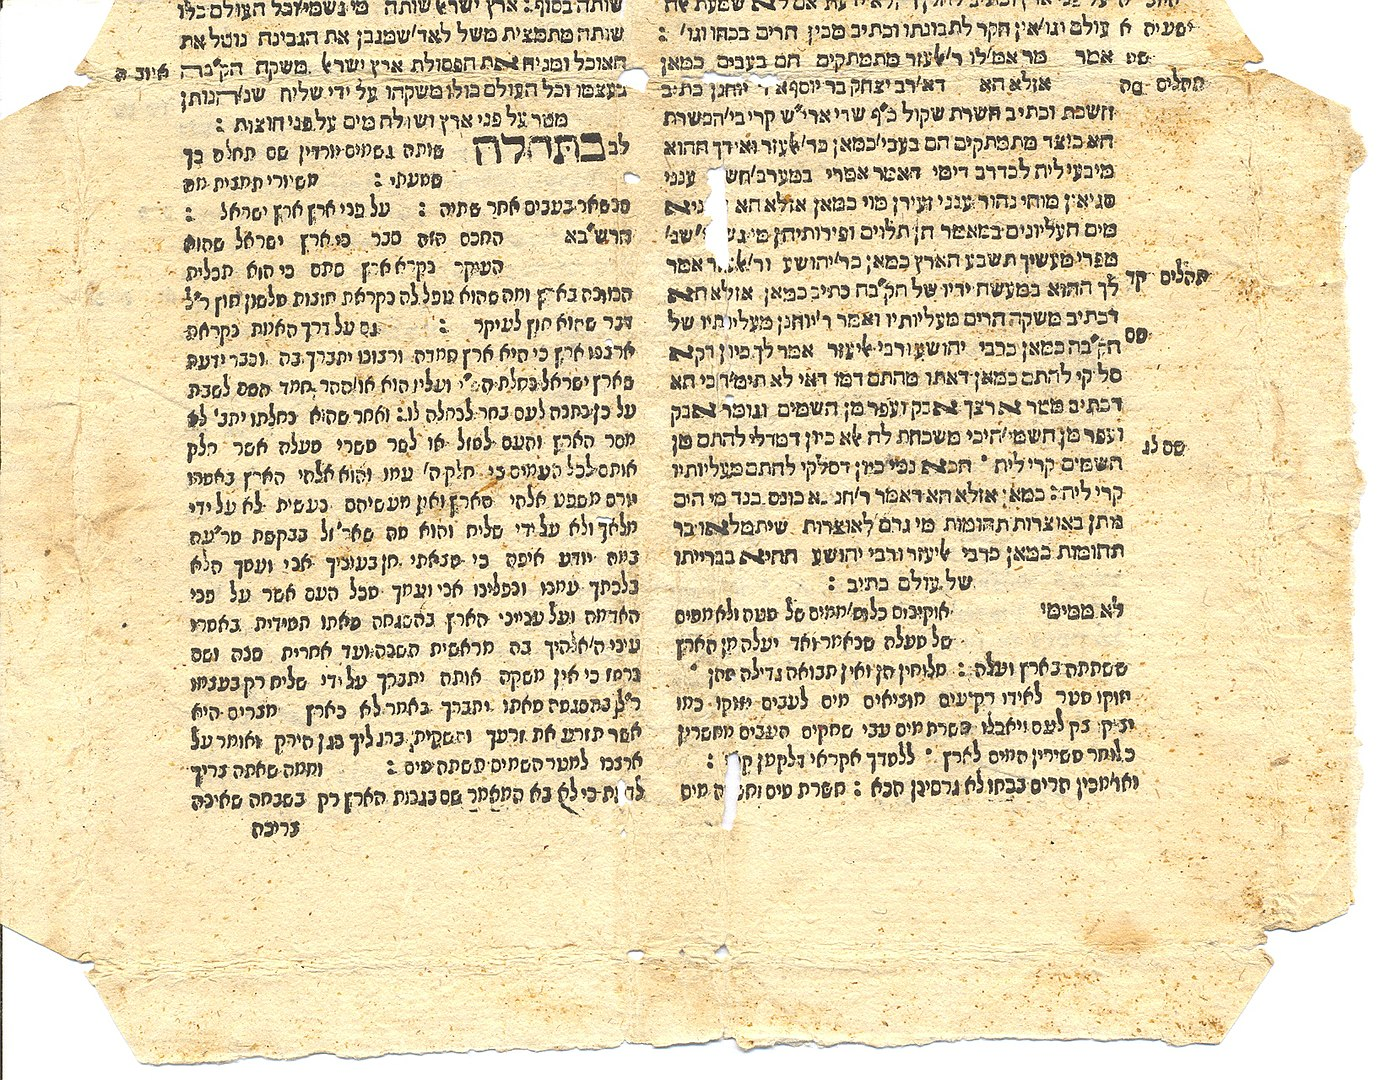 Early printing of the Talmud